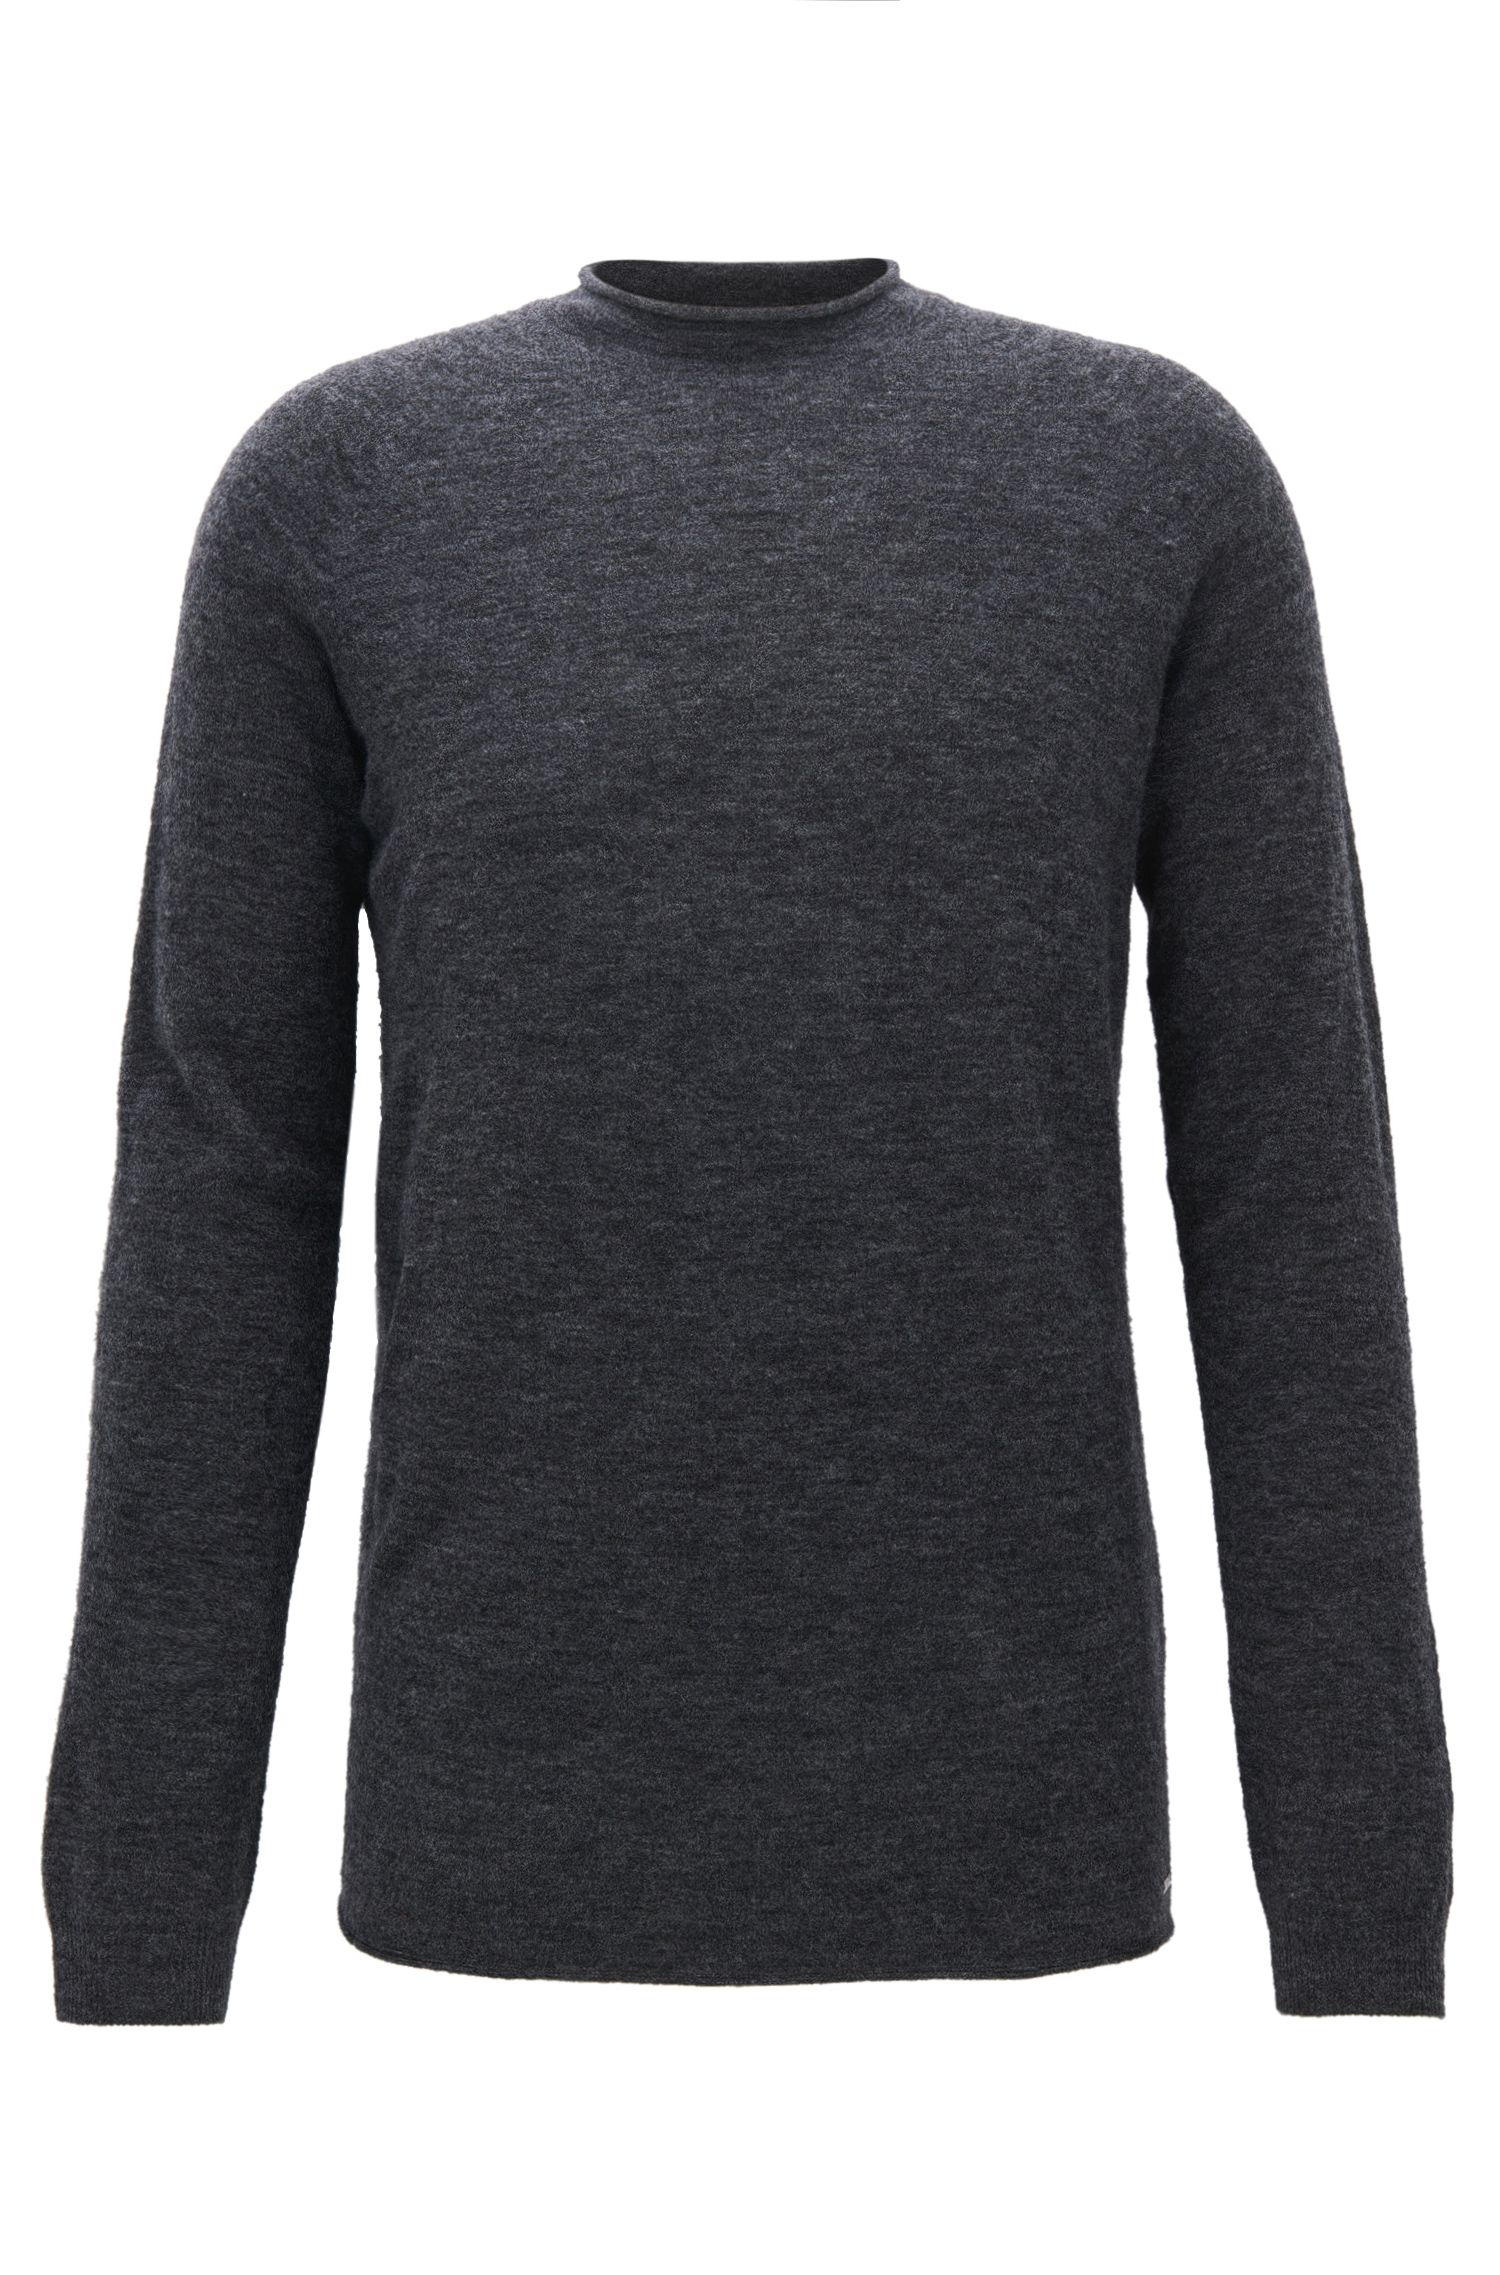 Seamless sweater in a wool blend